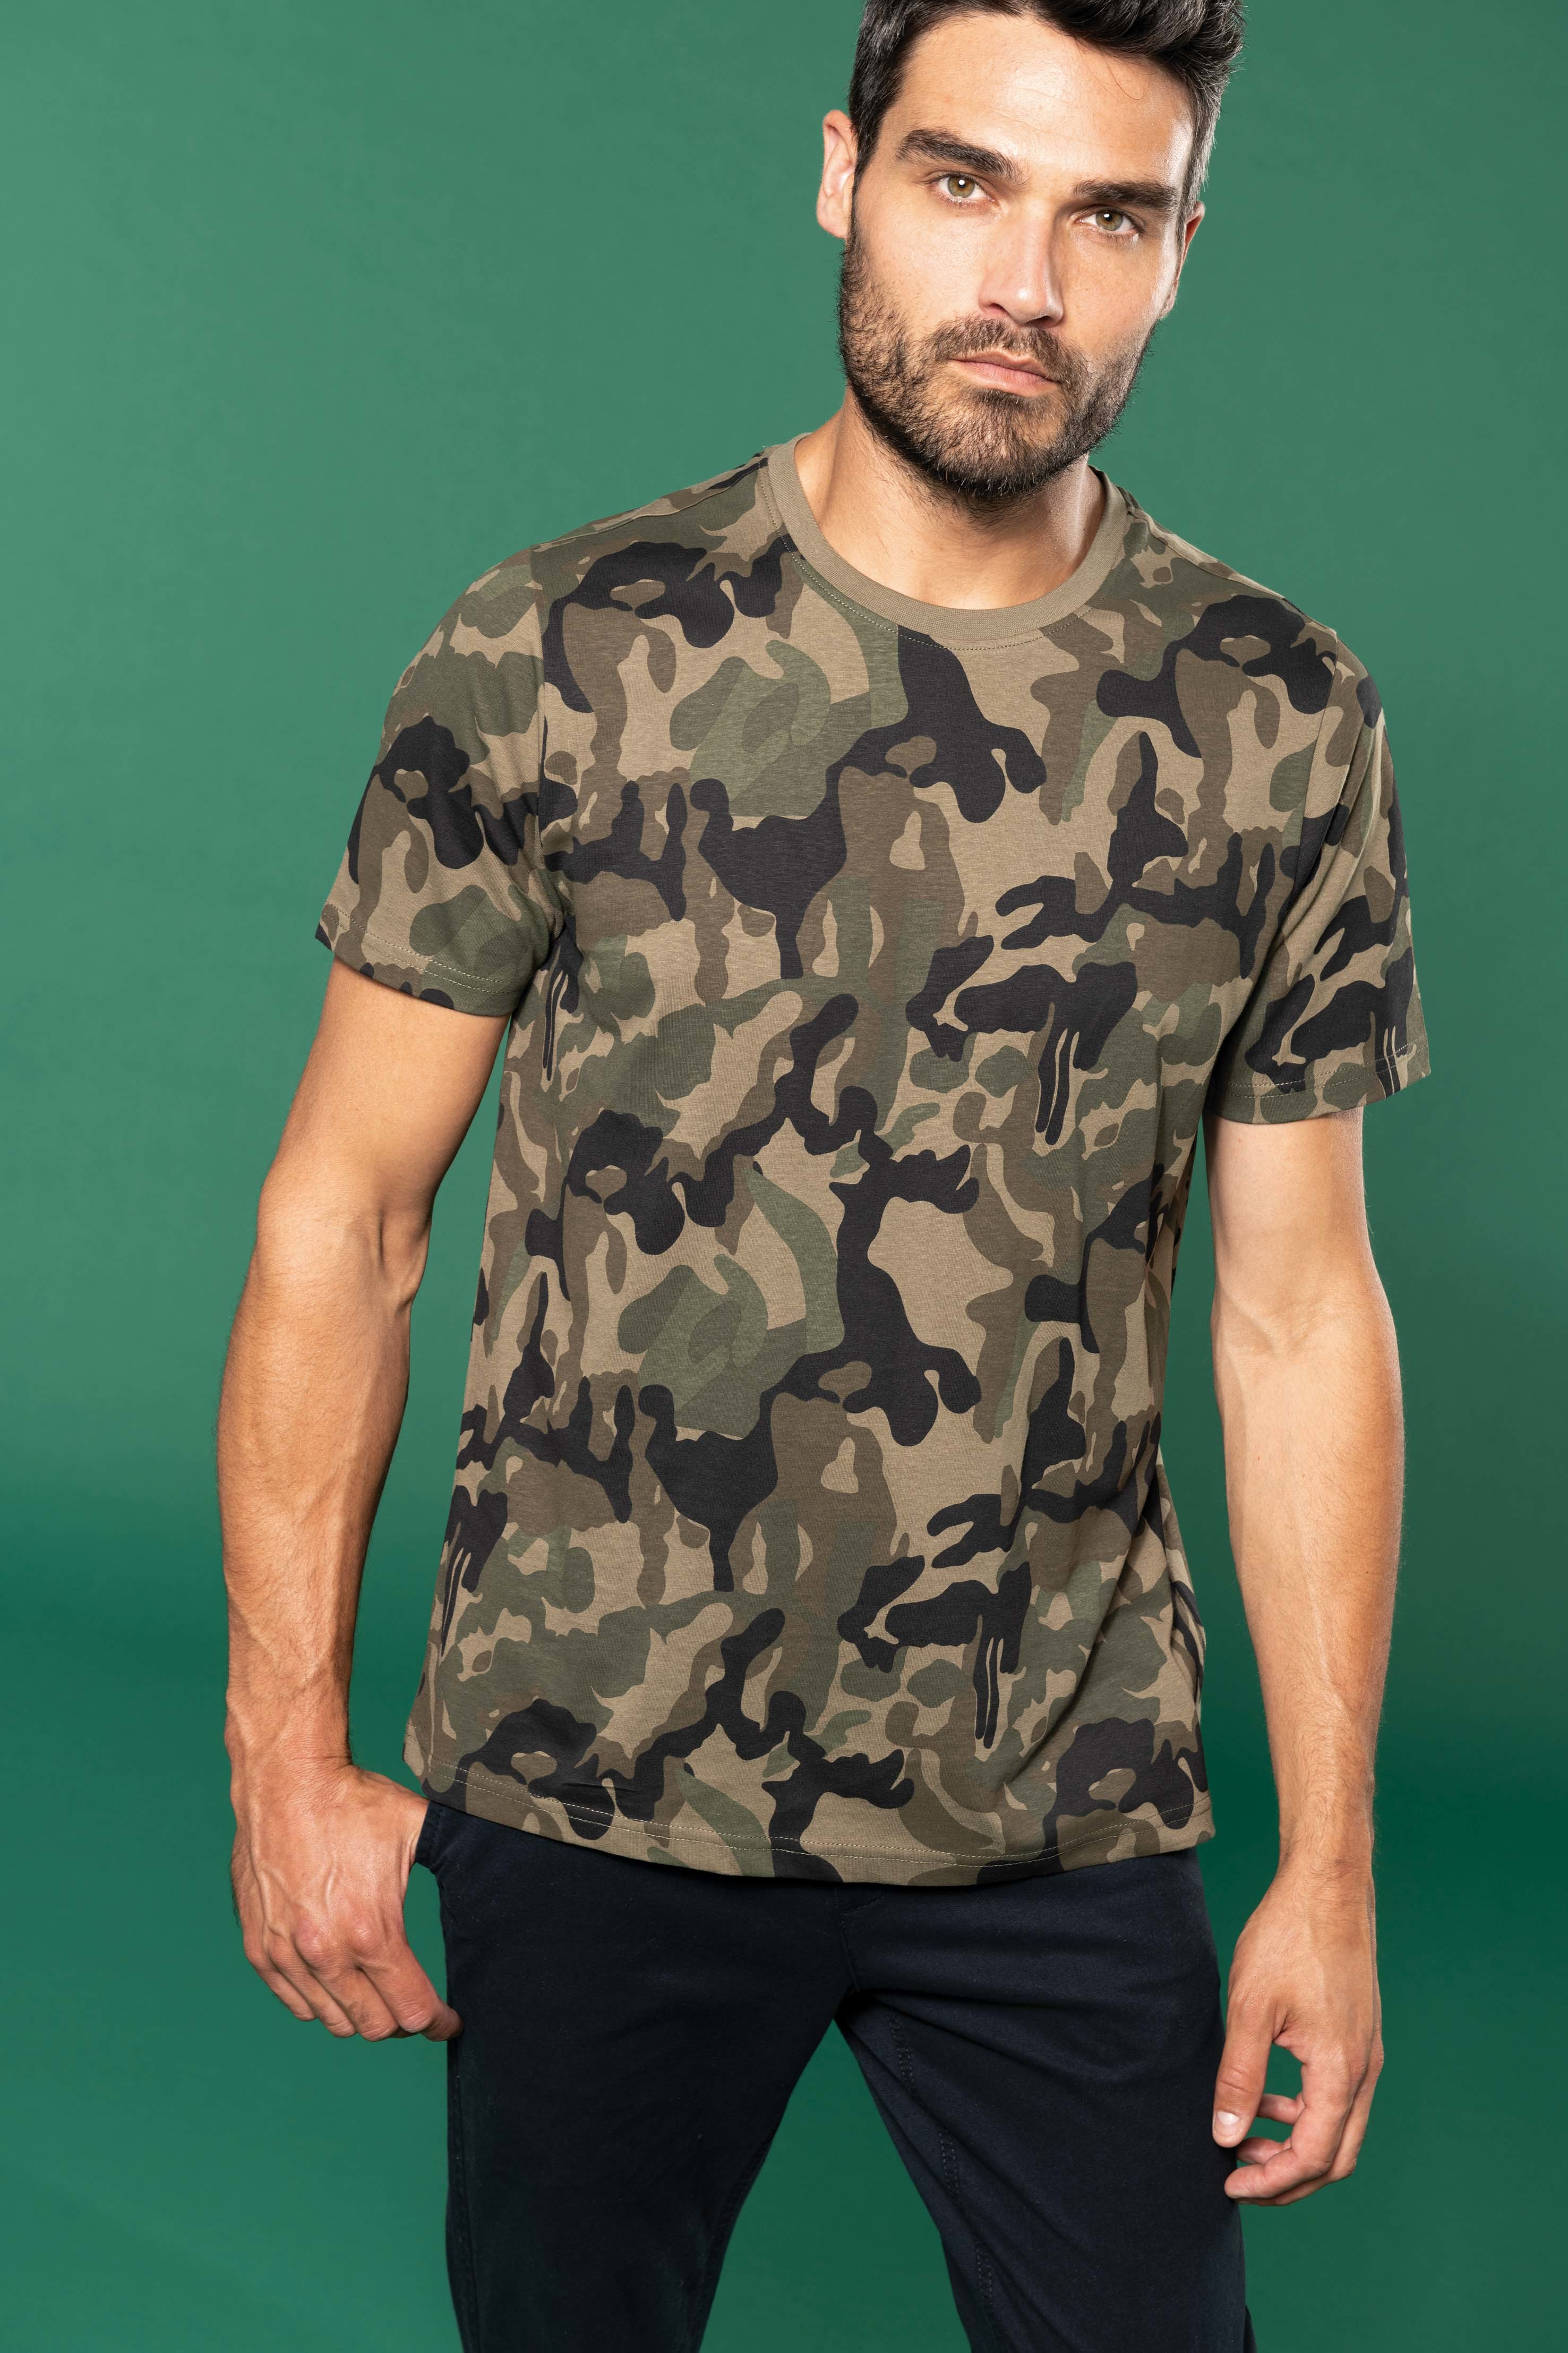 Tee-shirt camouglage manches courtes homme